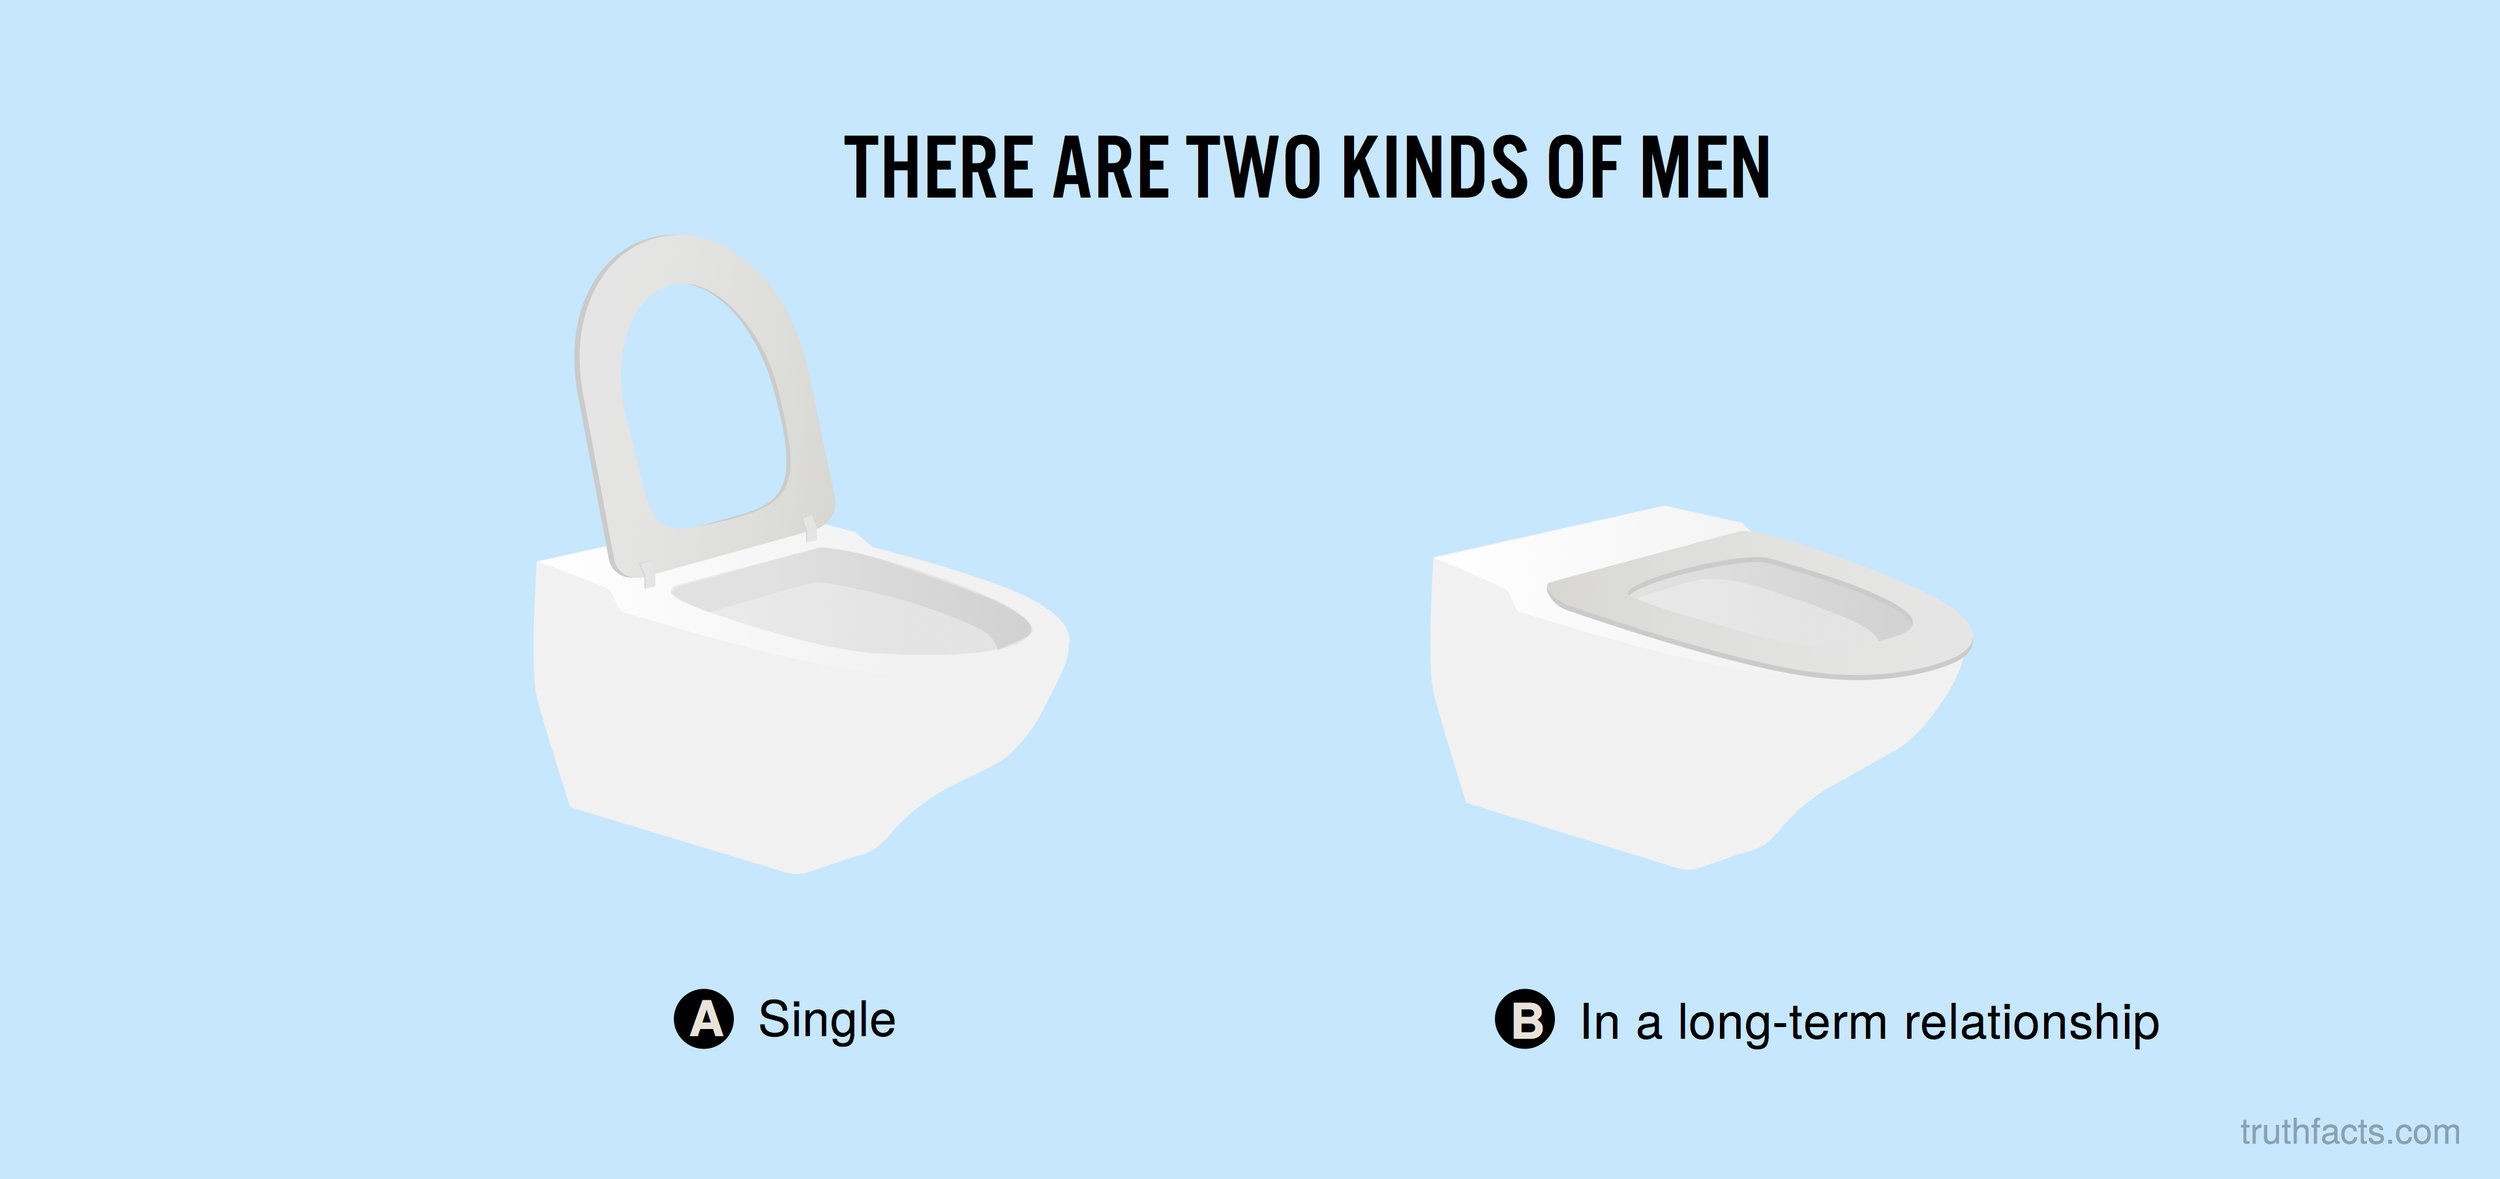 There are two kinds of men